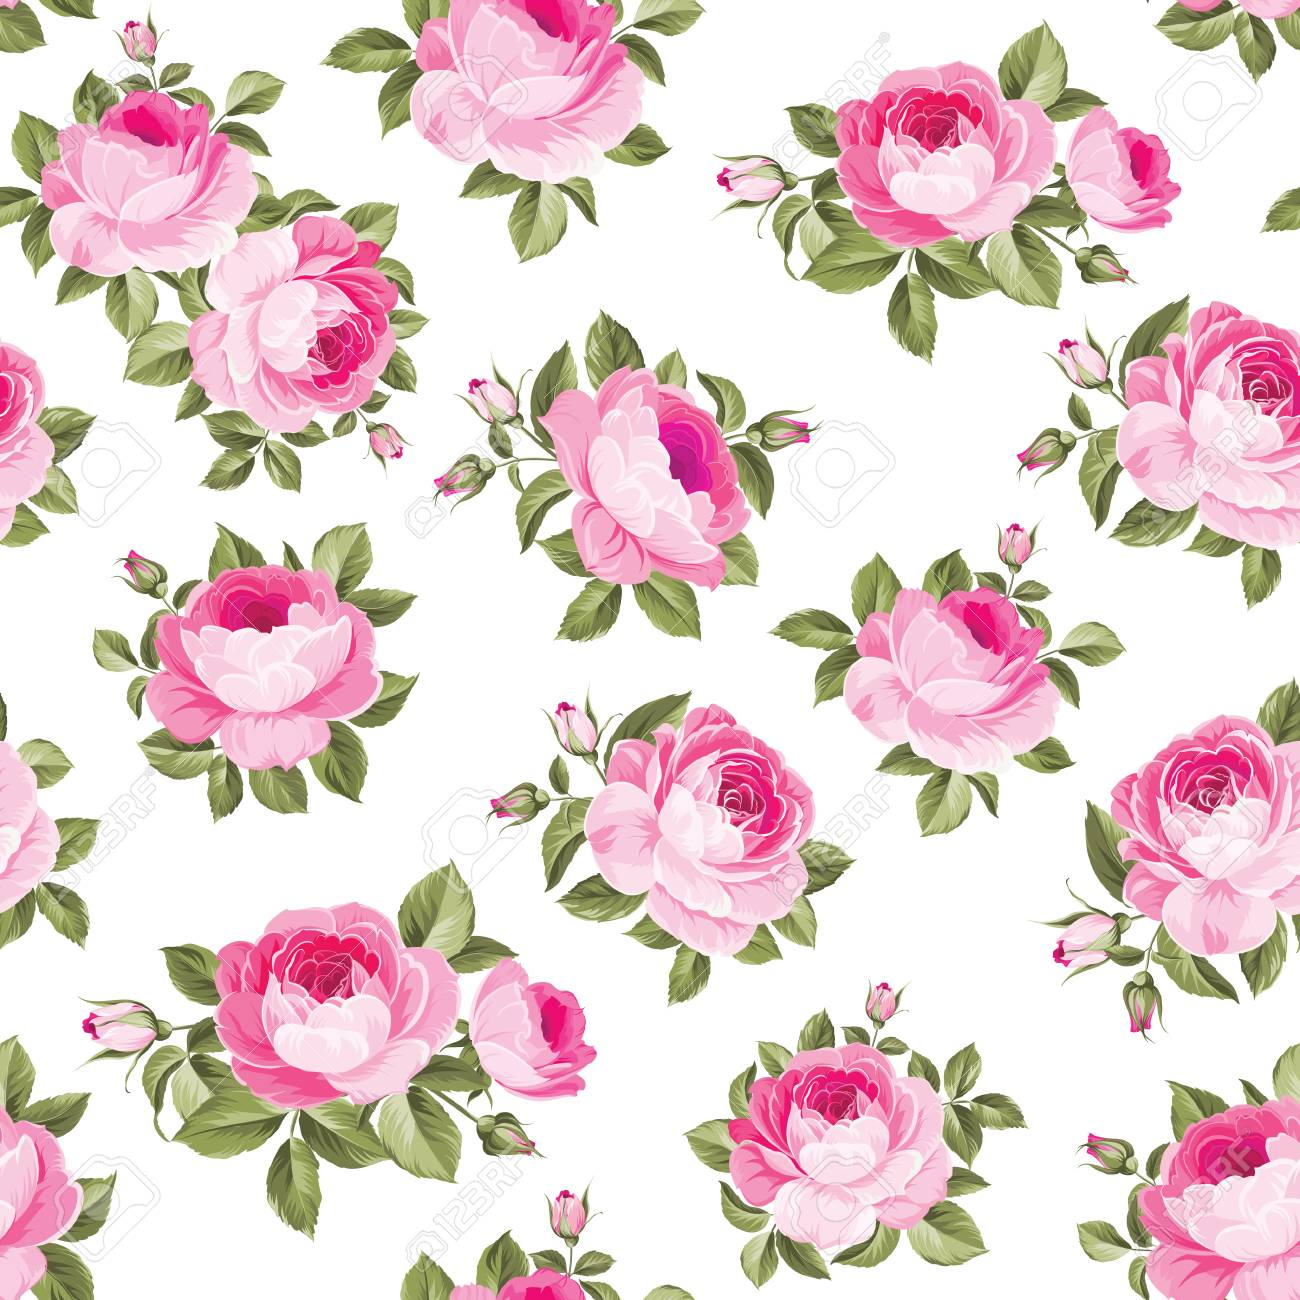 Luxurious Peony Wallpaper In Vintage Style Seamless Pattern Of Blooming Roses For Floral